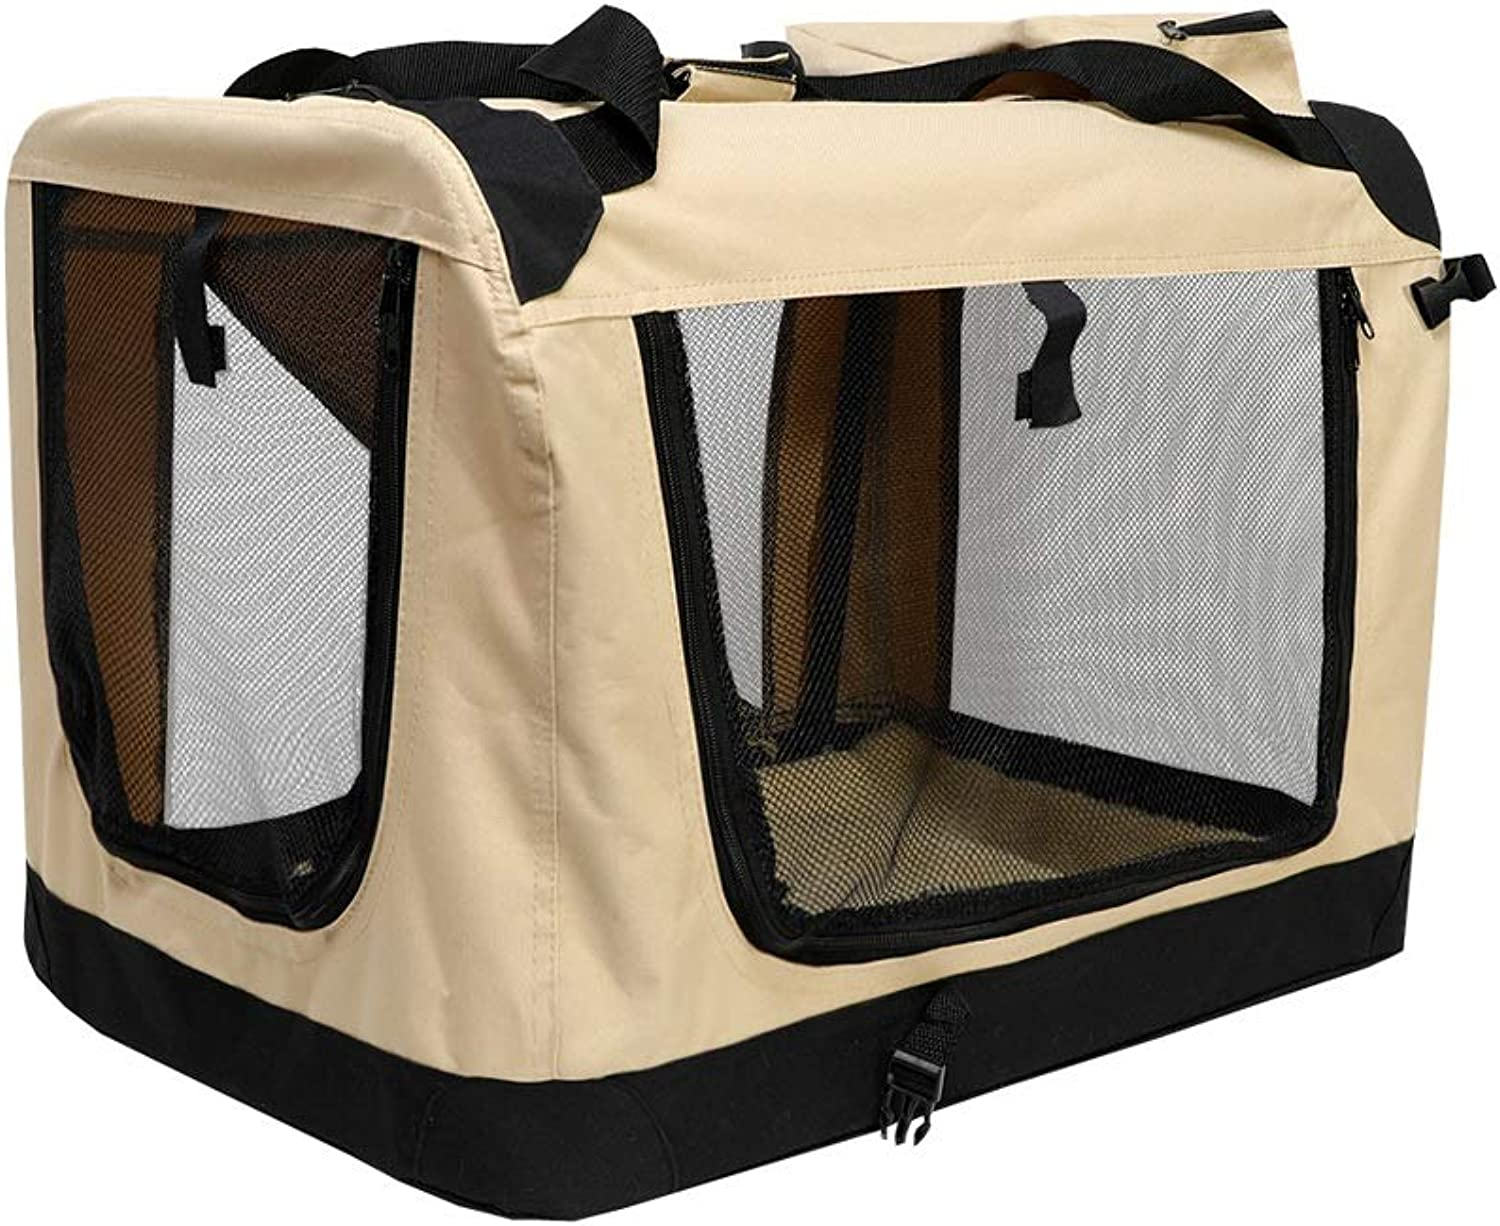 JIANXIN Pet Car Seat, Car Kennel, Out Carrying Case, Dog Tent, Foldable (four colors, Four Sizes) (color   Beige, Size   S)